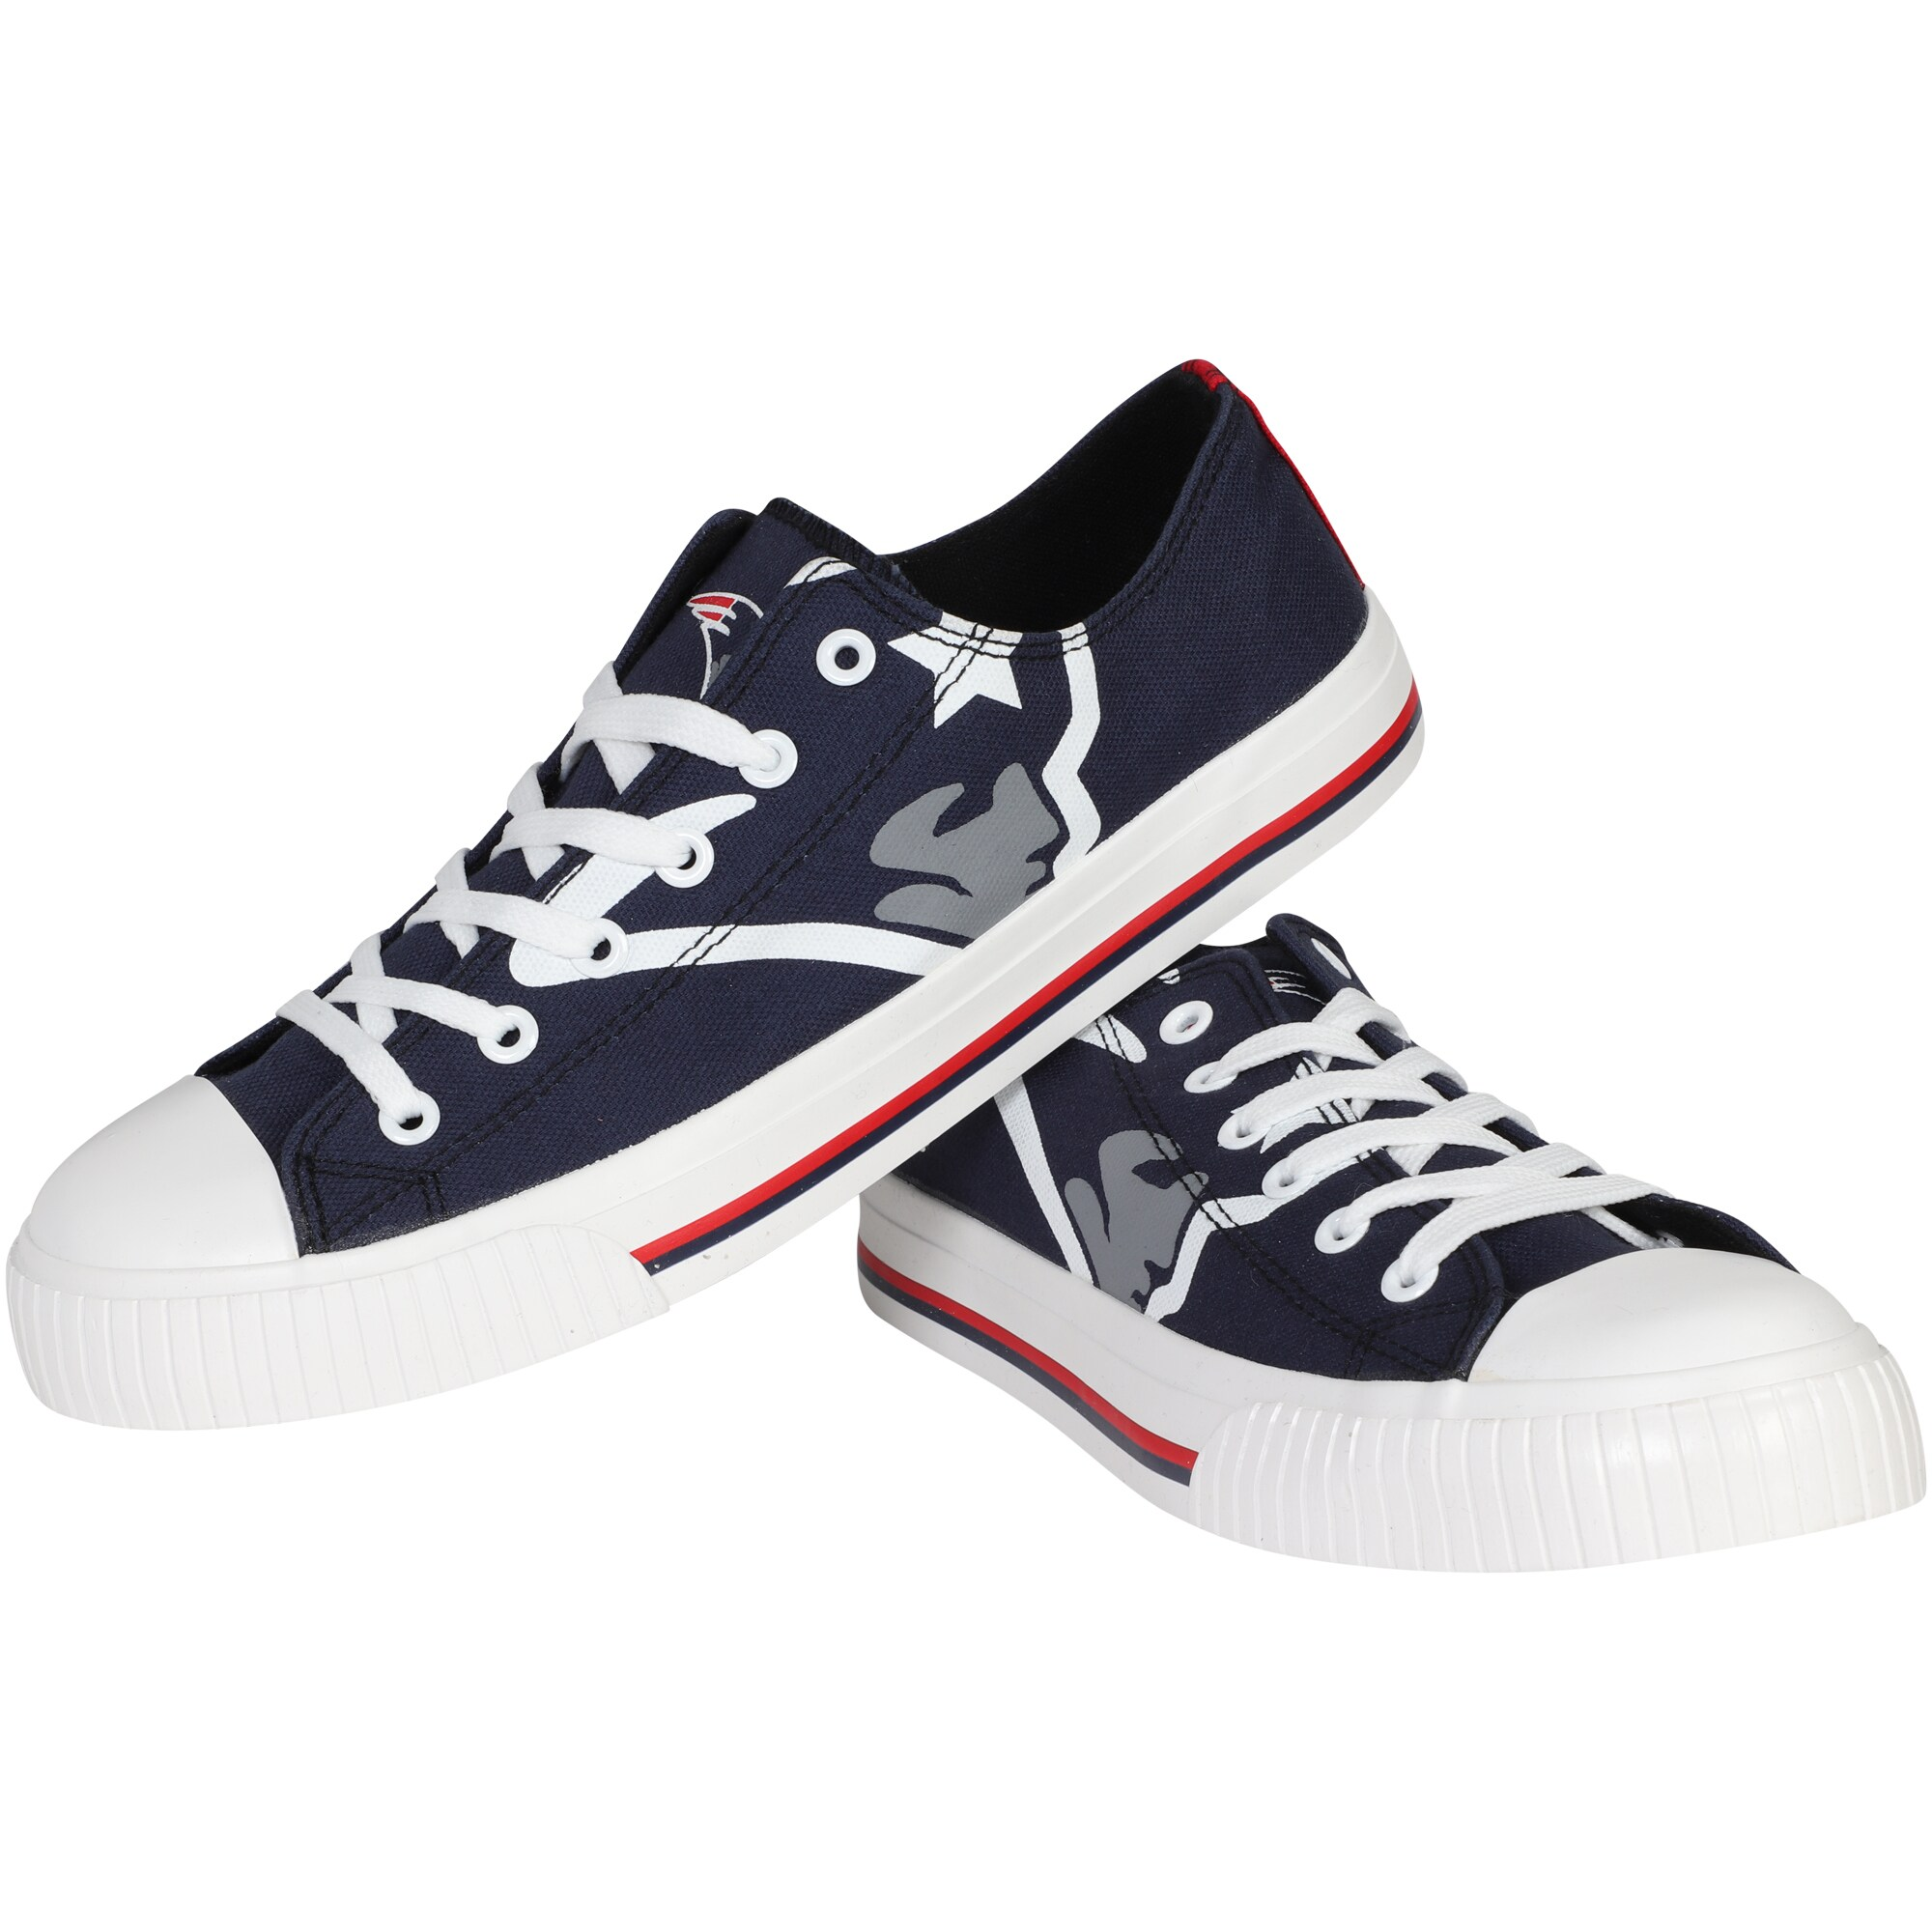 New England Patriots Big Logo Low Top Sneakers